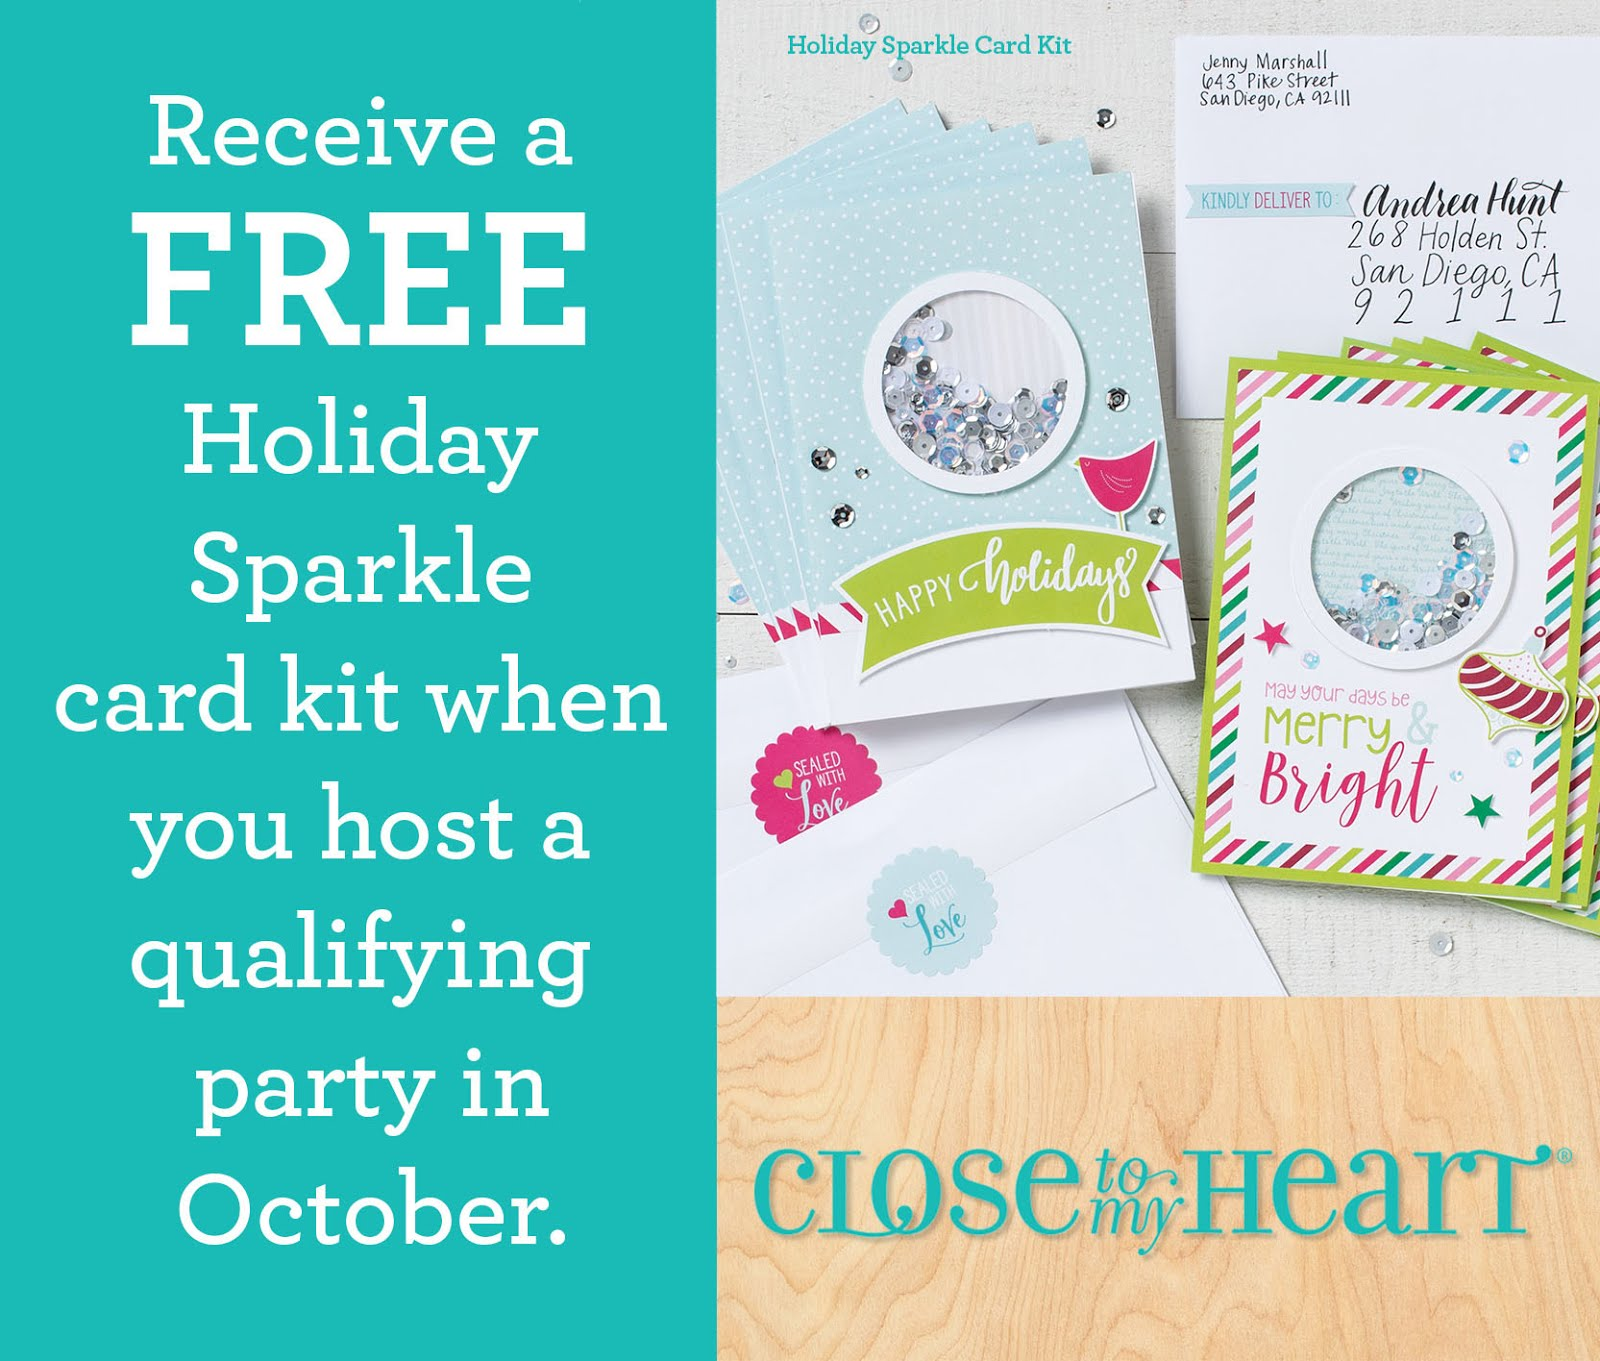 Host a party in October!